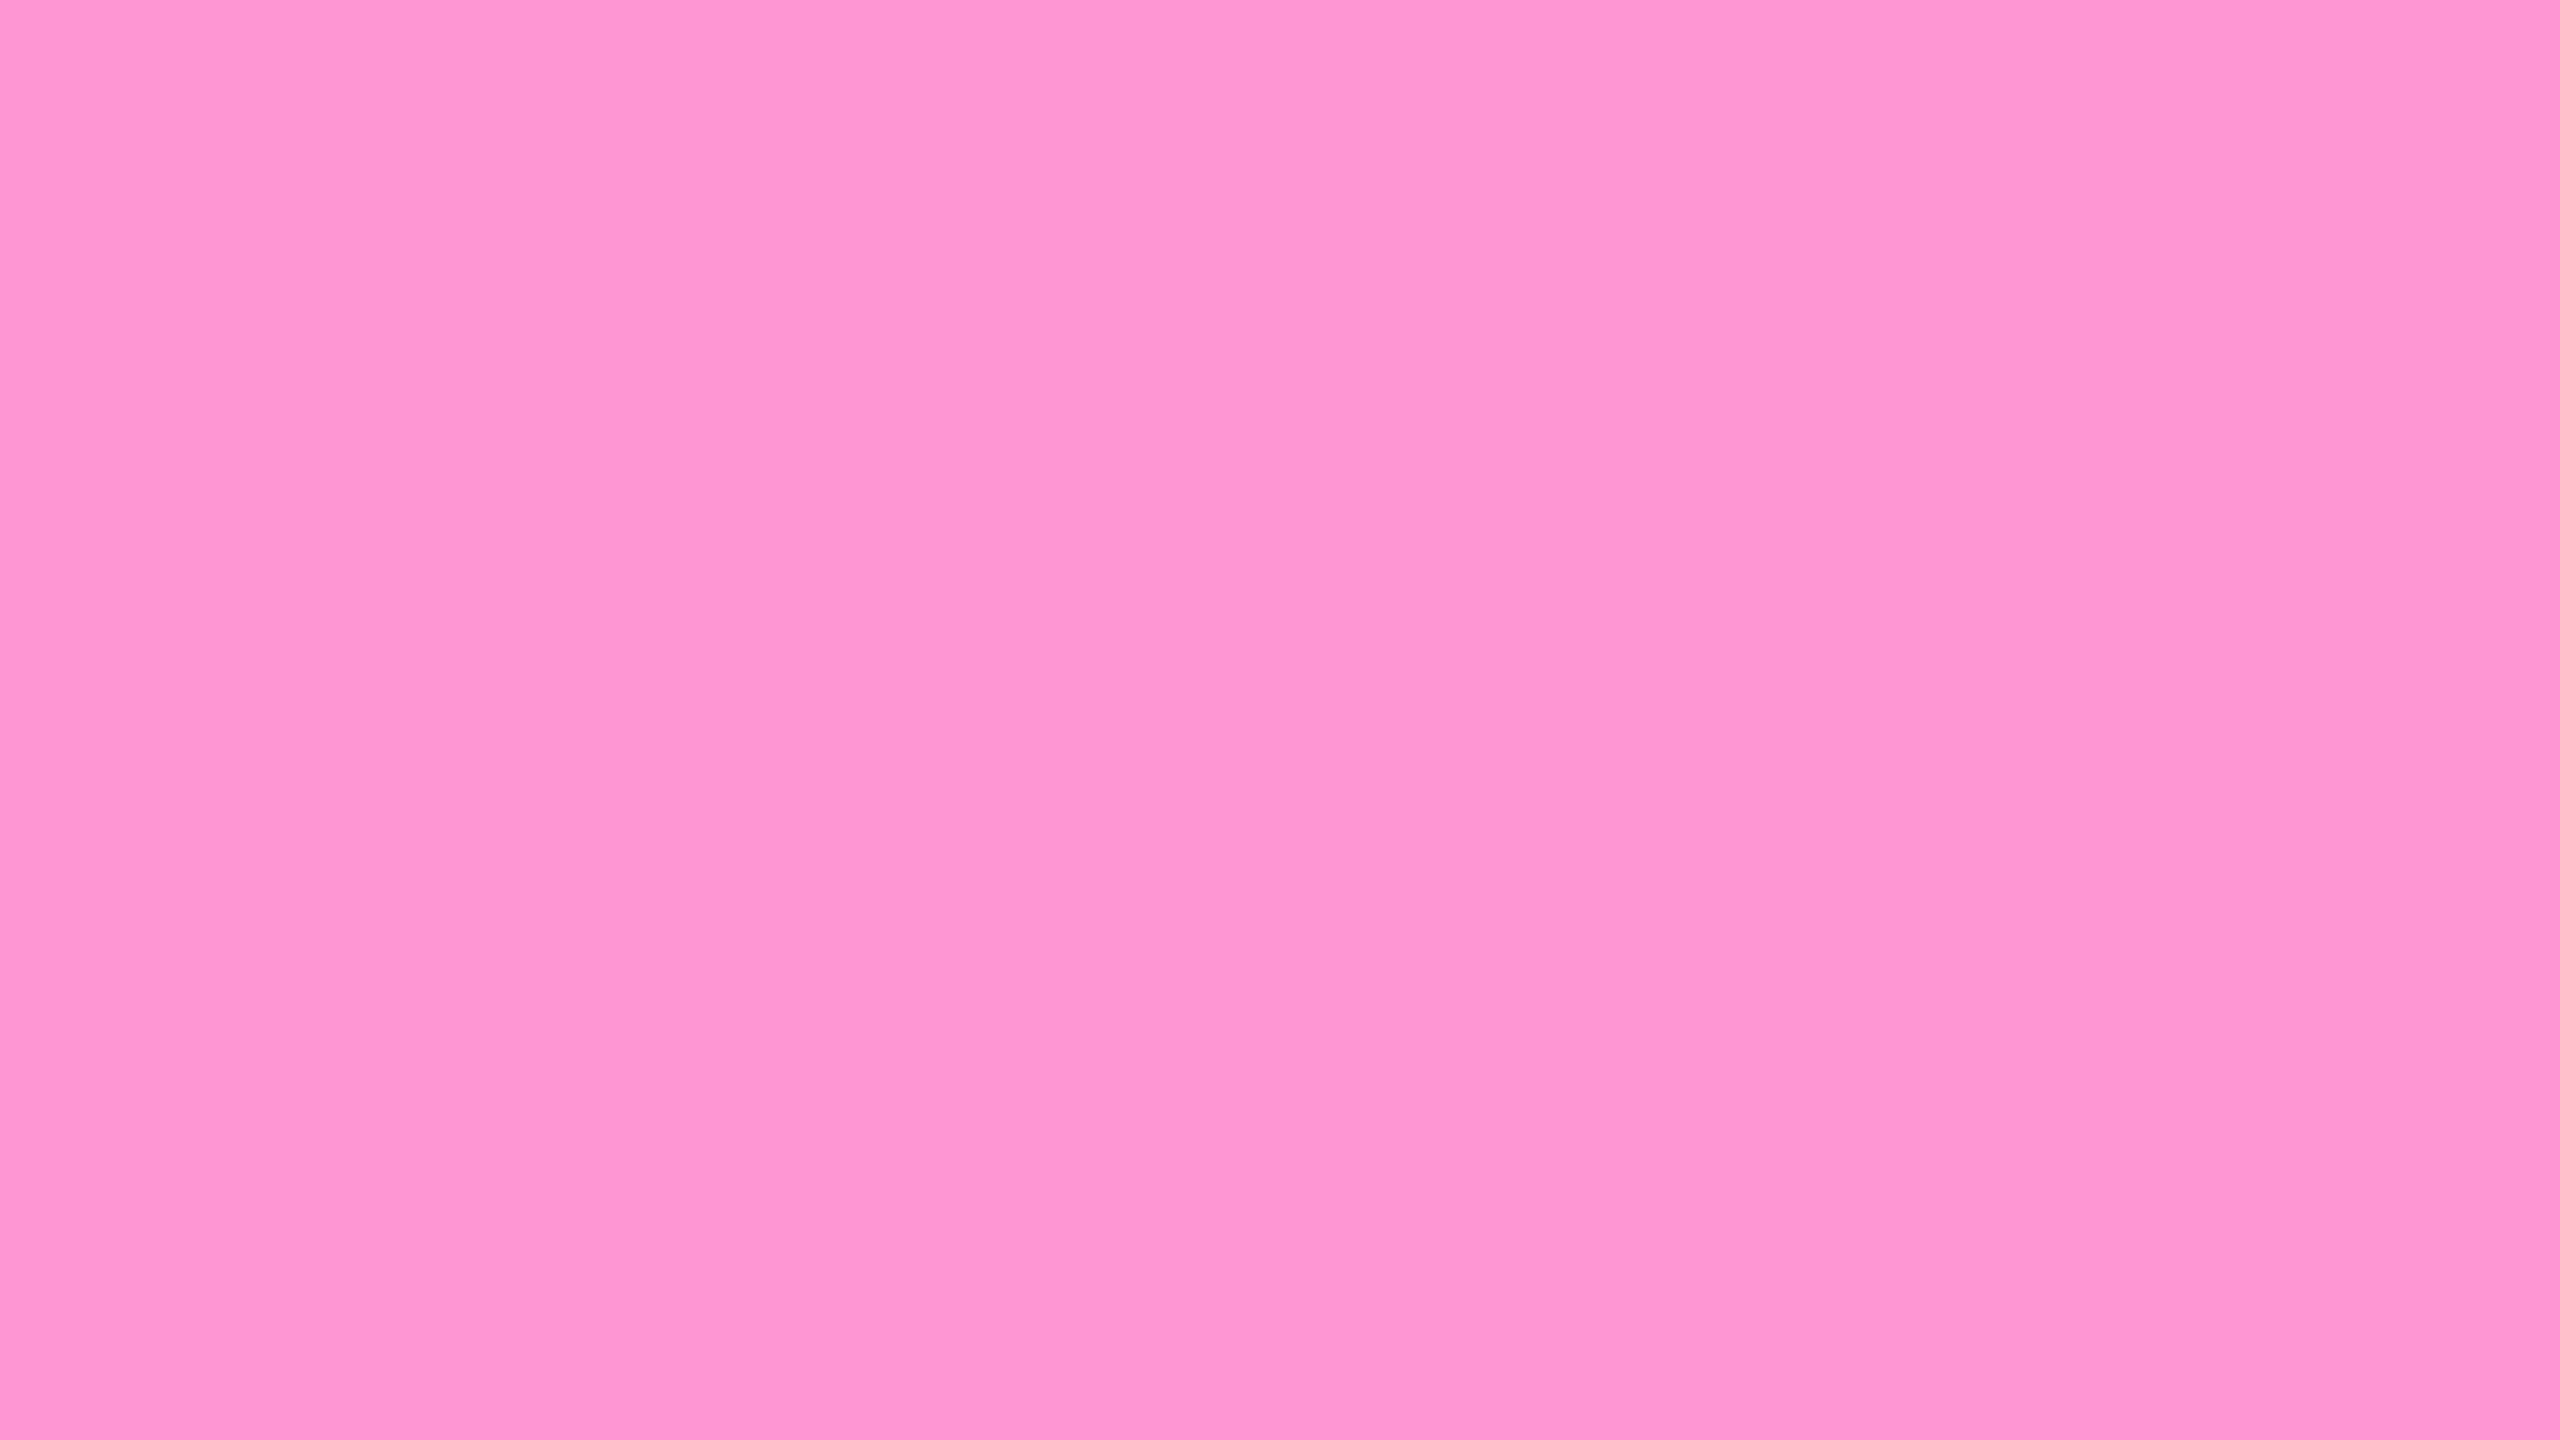 Pink Backgrounds For Desktop 60 Images